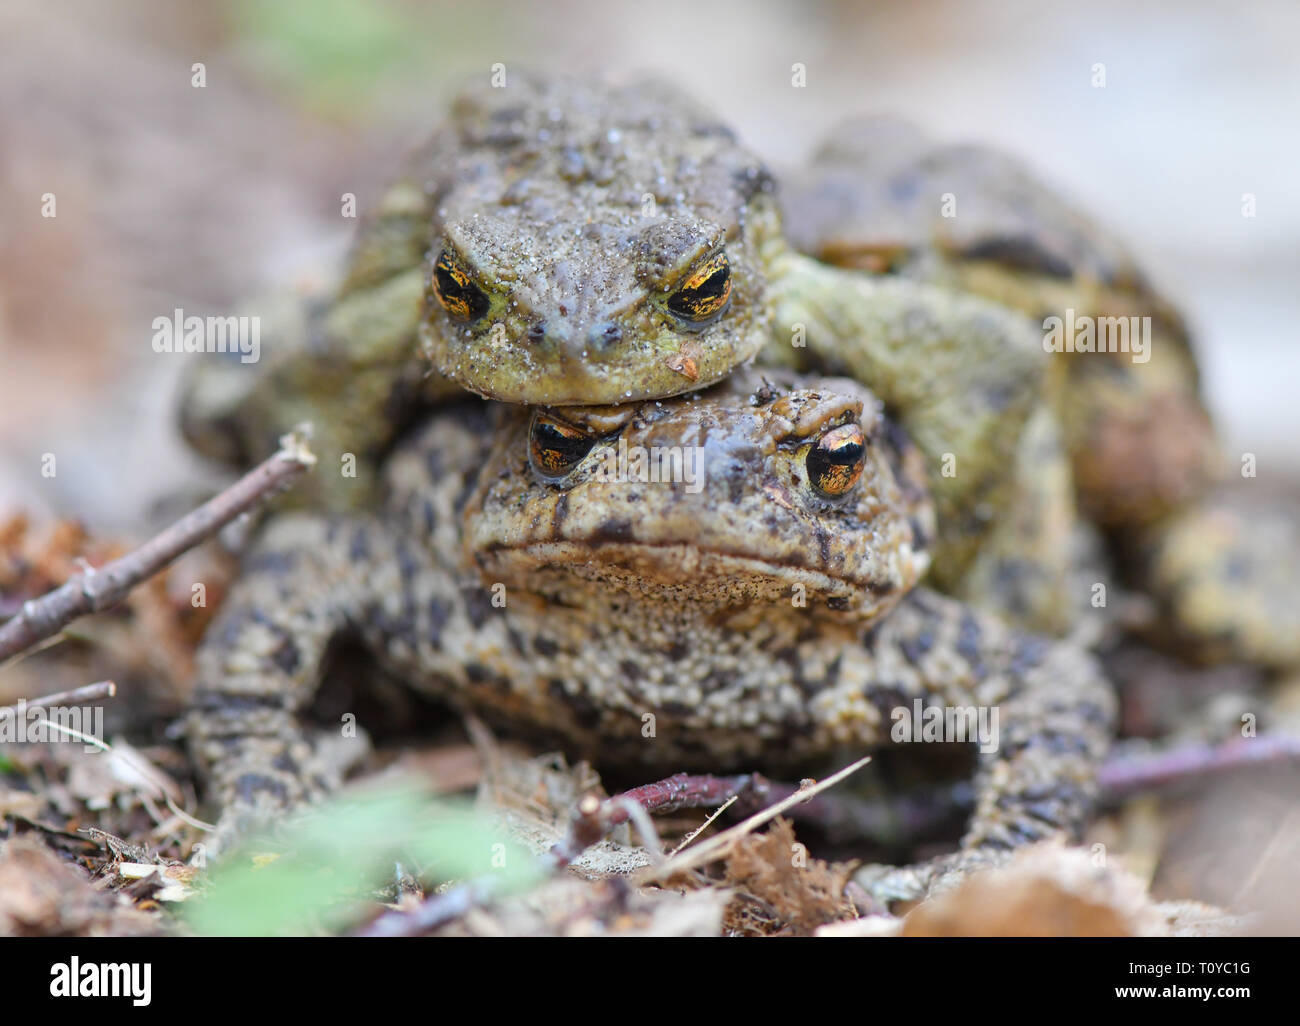 Sauen, Germany. 22nd Mar, 2019. A pair of earth toads (Bufo bufo) crawls across the ground at the edge of a small pond in the forest of the August Beer Foundation. Due to the mild spring weather, the toads' migration to their light waters is in full swing. Credit: Patrick Pleul/dpa-Zentralbild/dpa/Alamy Live News - Stock Image